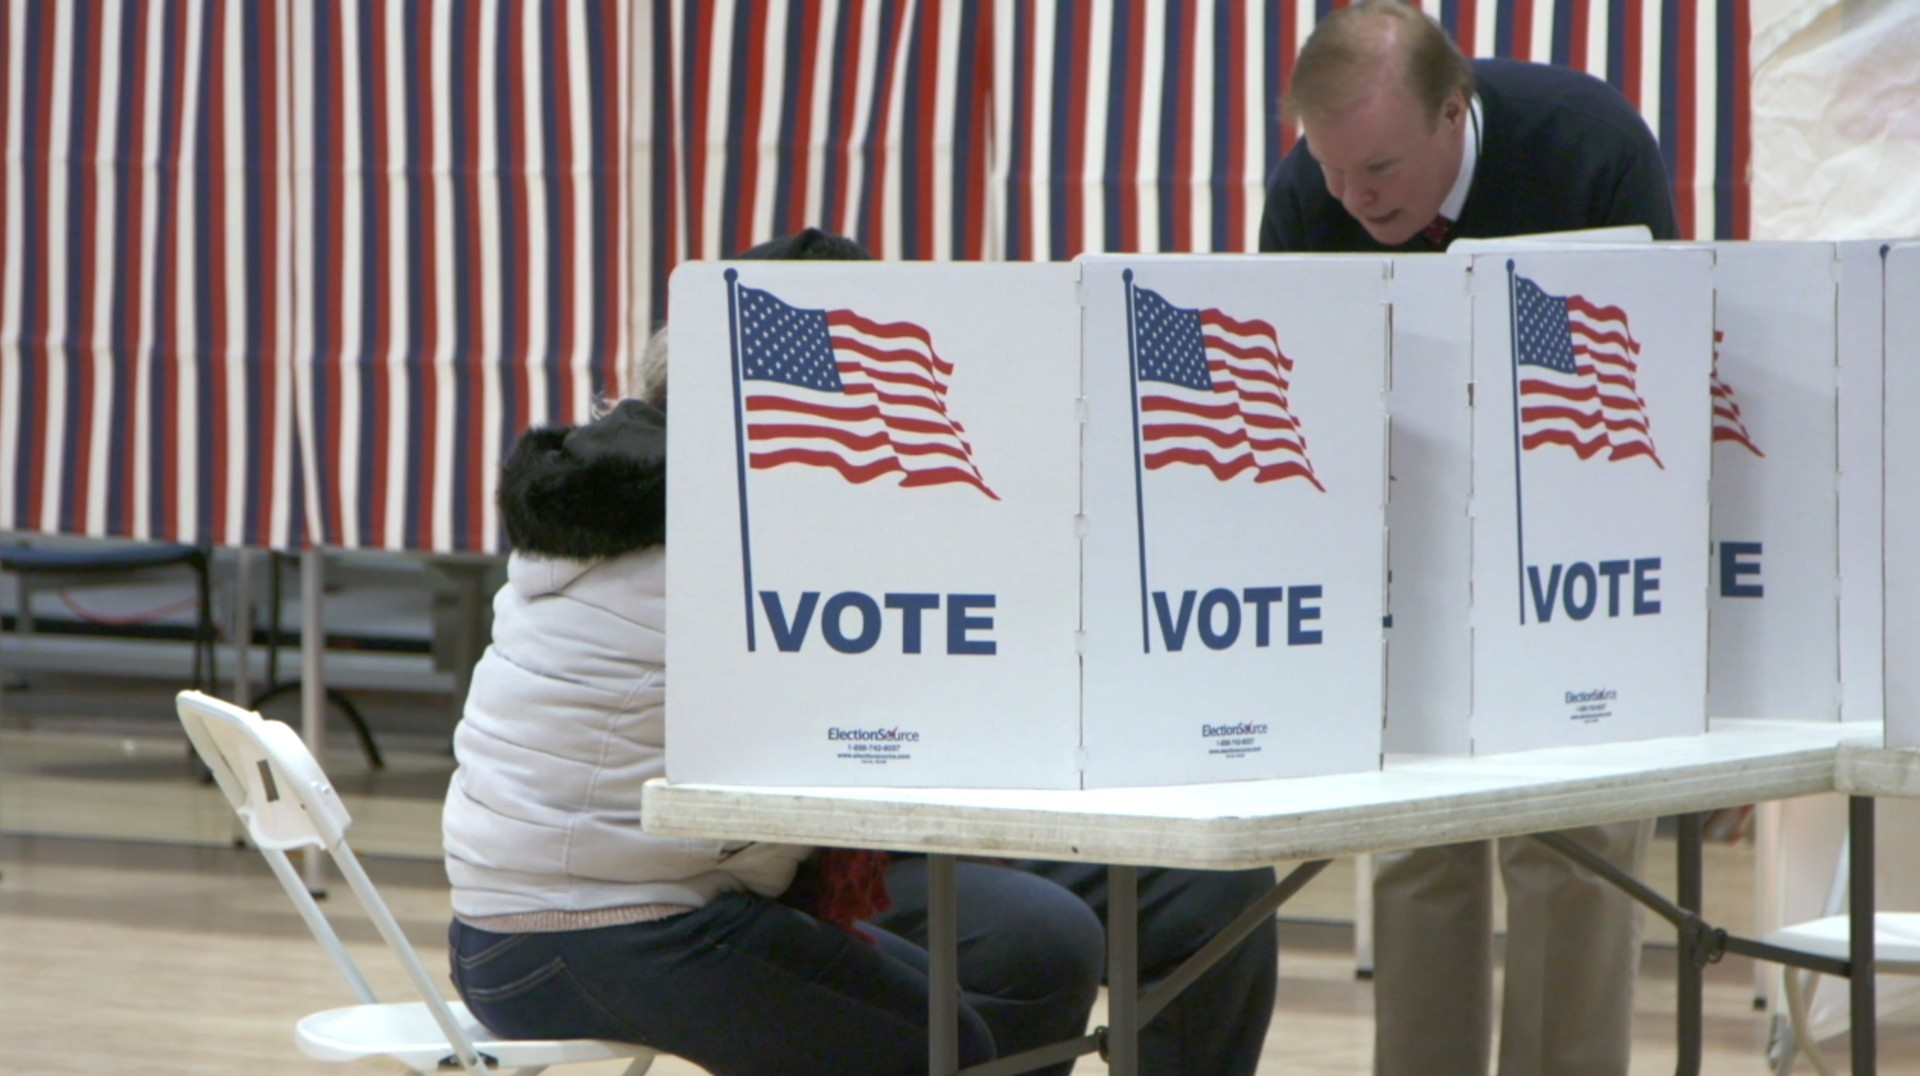 Voting rights: What every American should know before they hit the polls